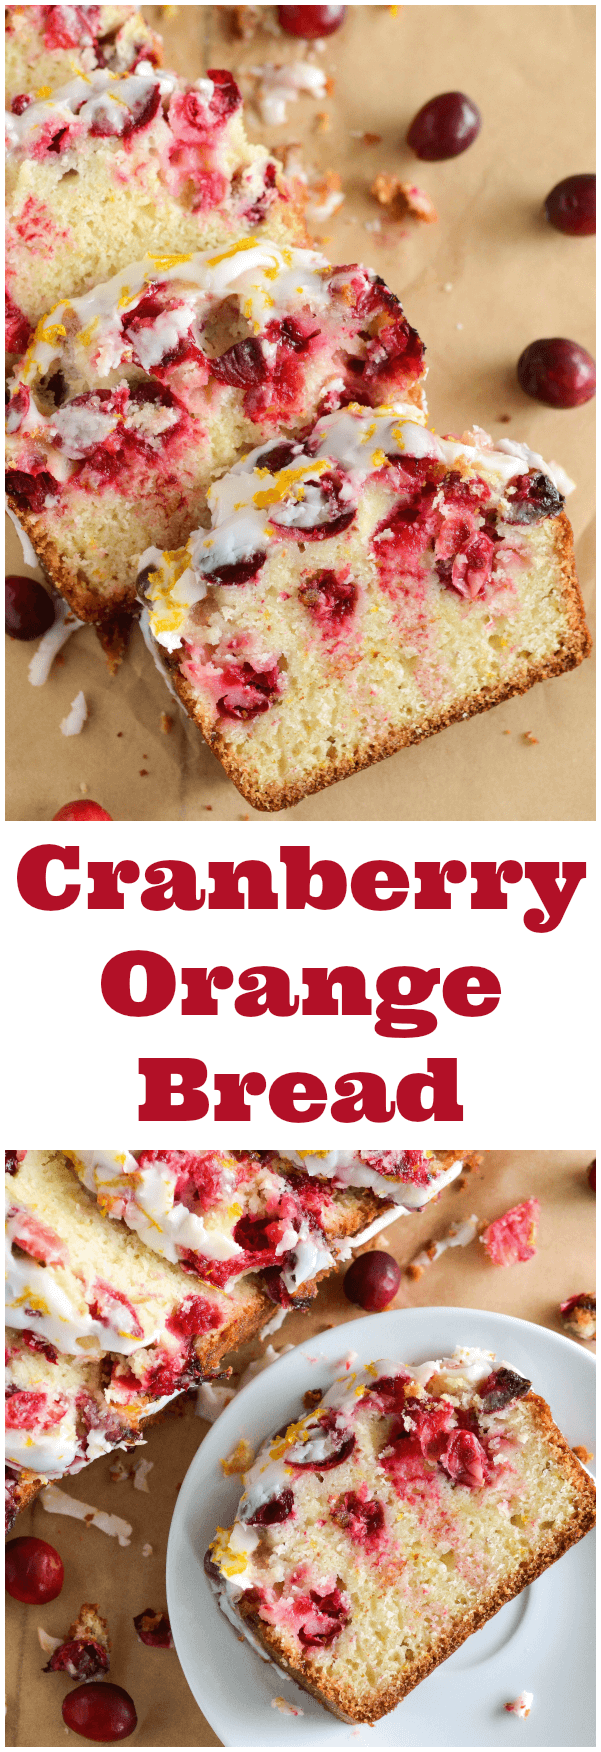 Cranberry Orange Bread!